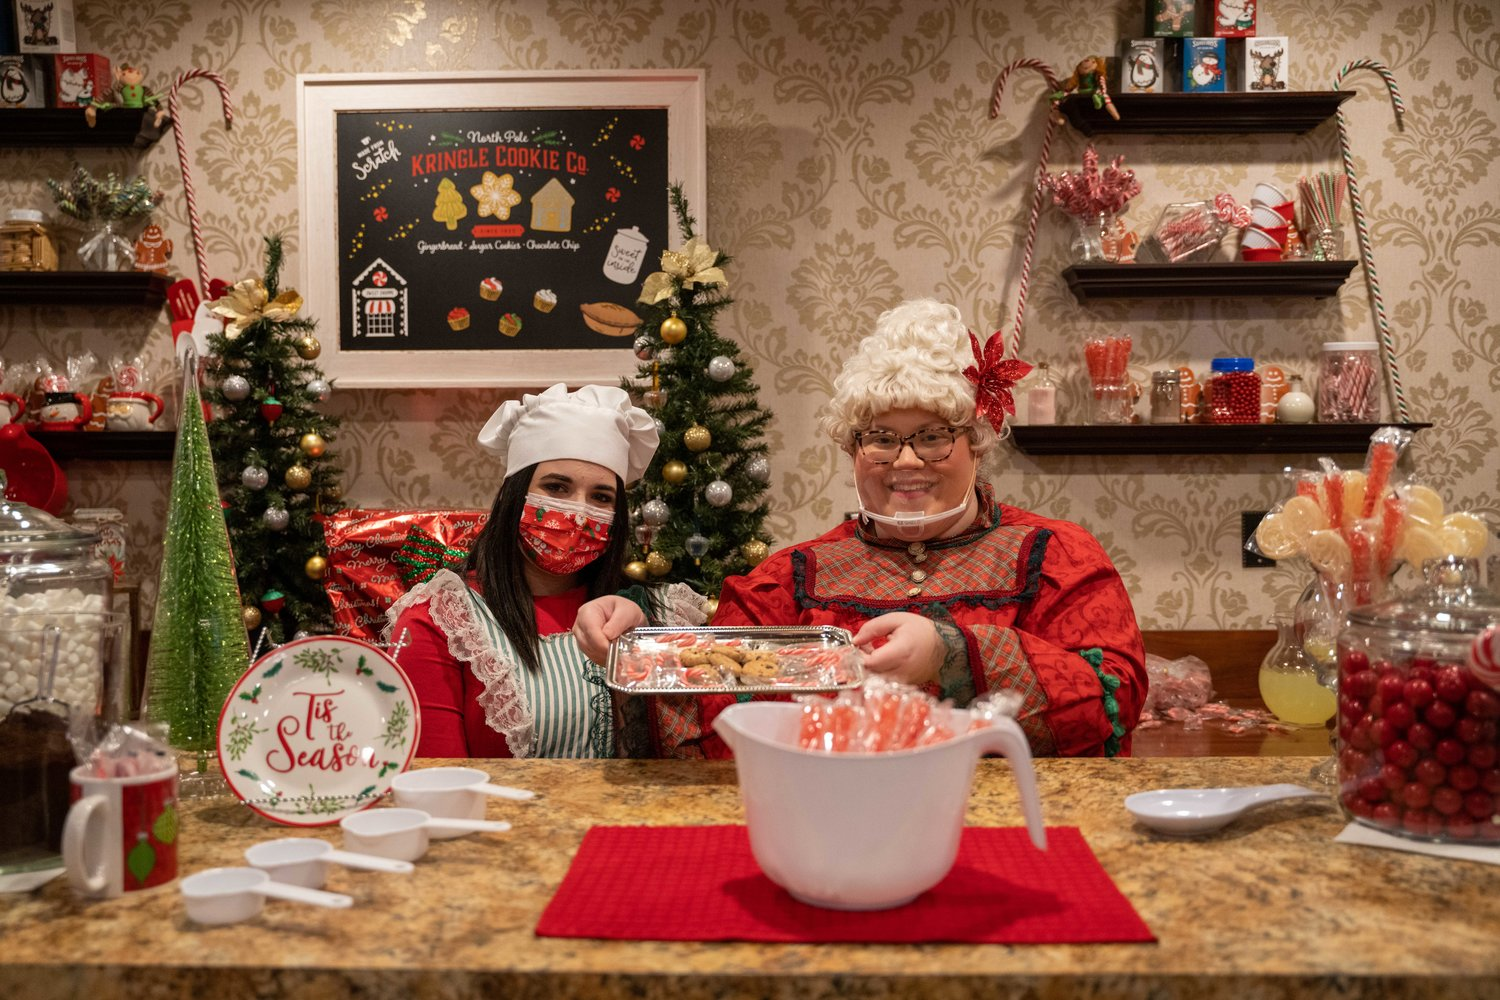 Mrs. Claus and her trusted elf, Cinnamon, work hard to bake Santa's favorite confections to power him through an around-the-world trip of gift-giving.